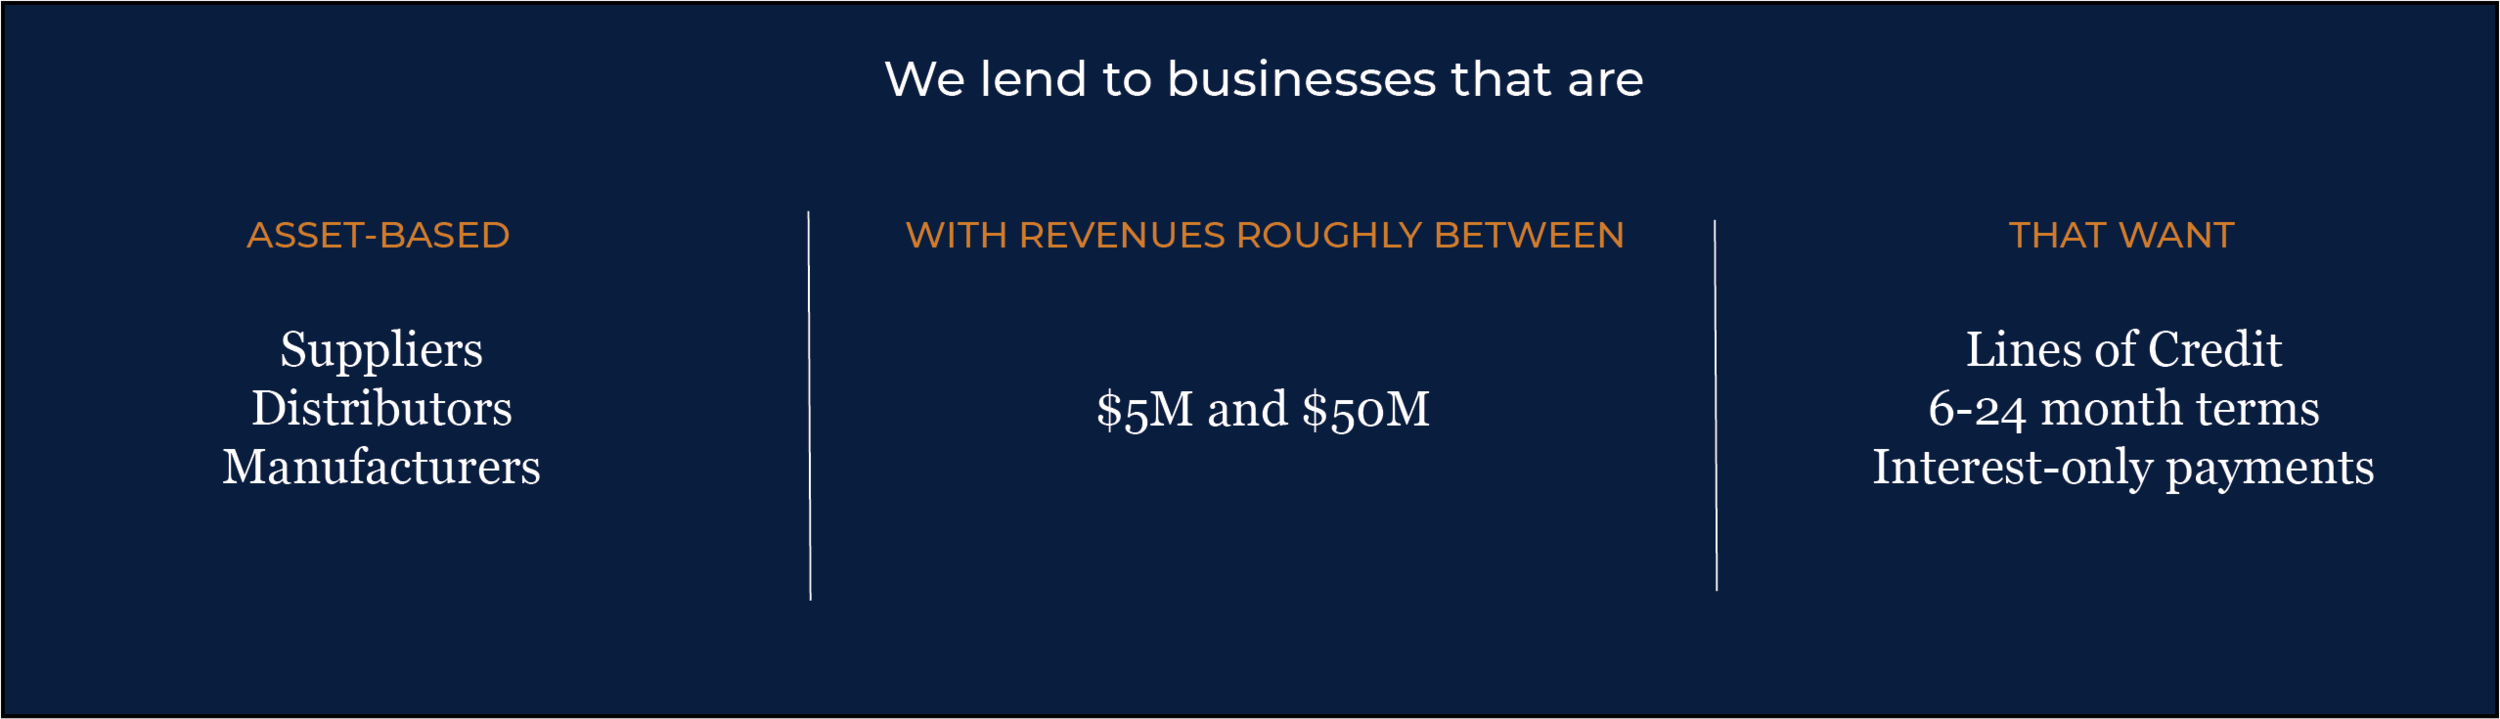 'We lend to businesses that are' (5-50).png